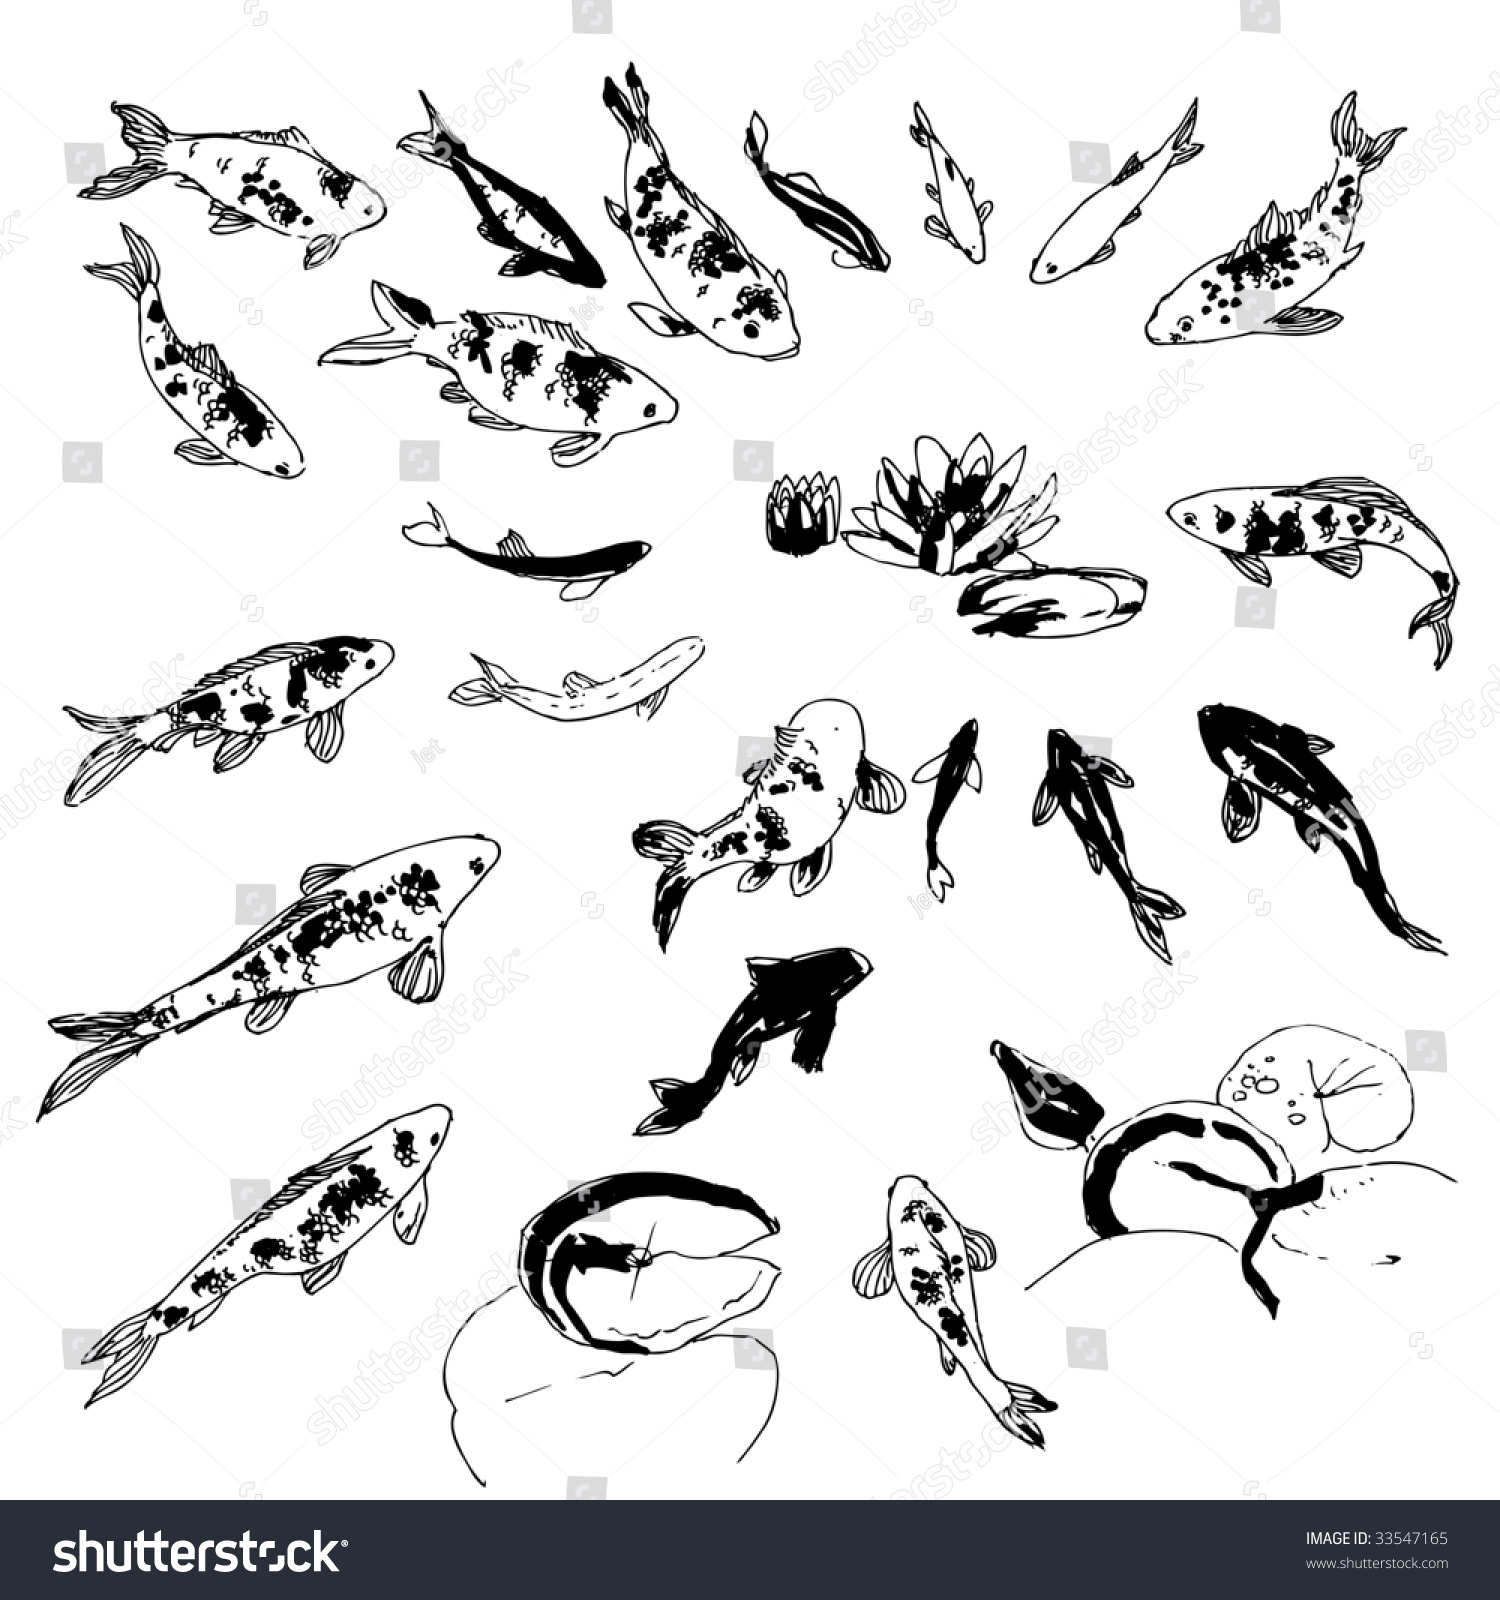 Black white handdrawing koi fish collection stock vector for Black and white koi fish